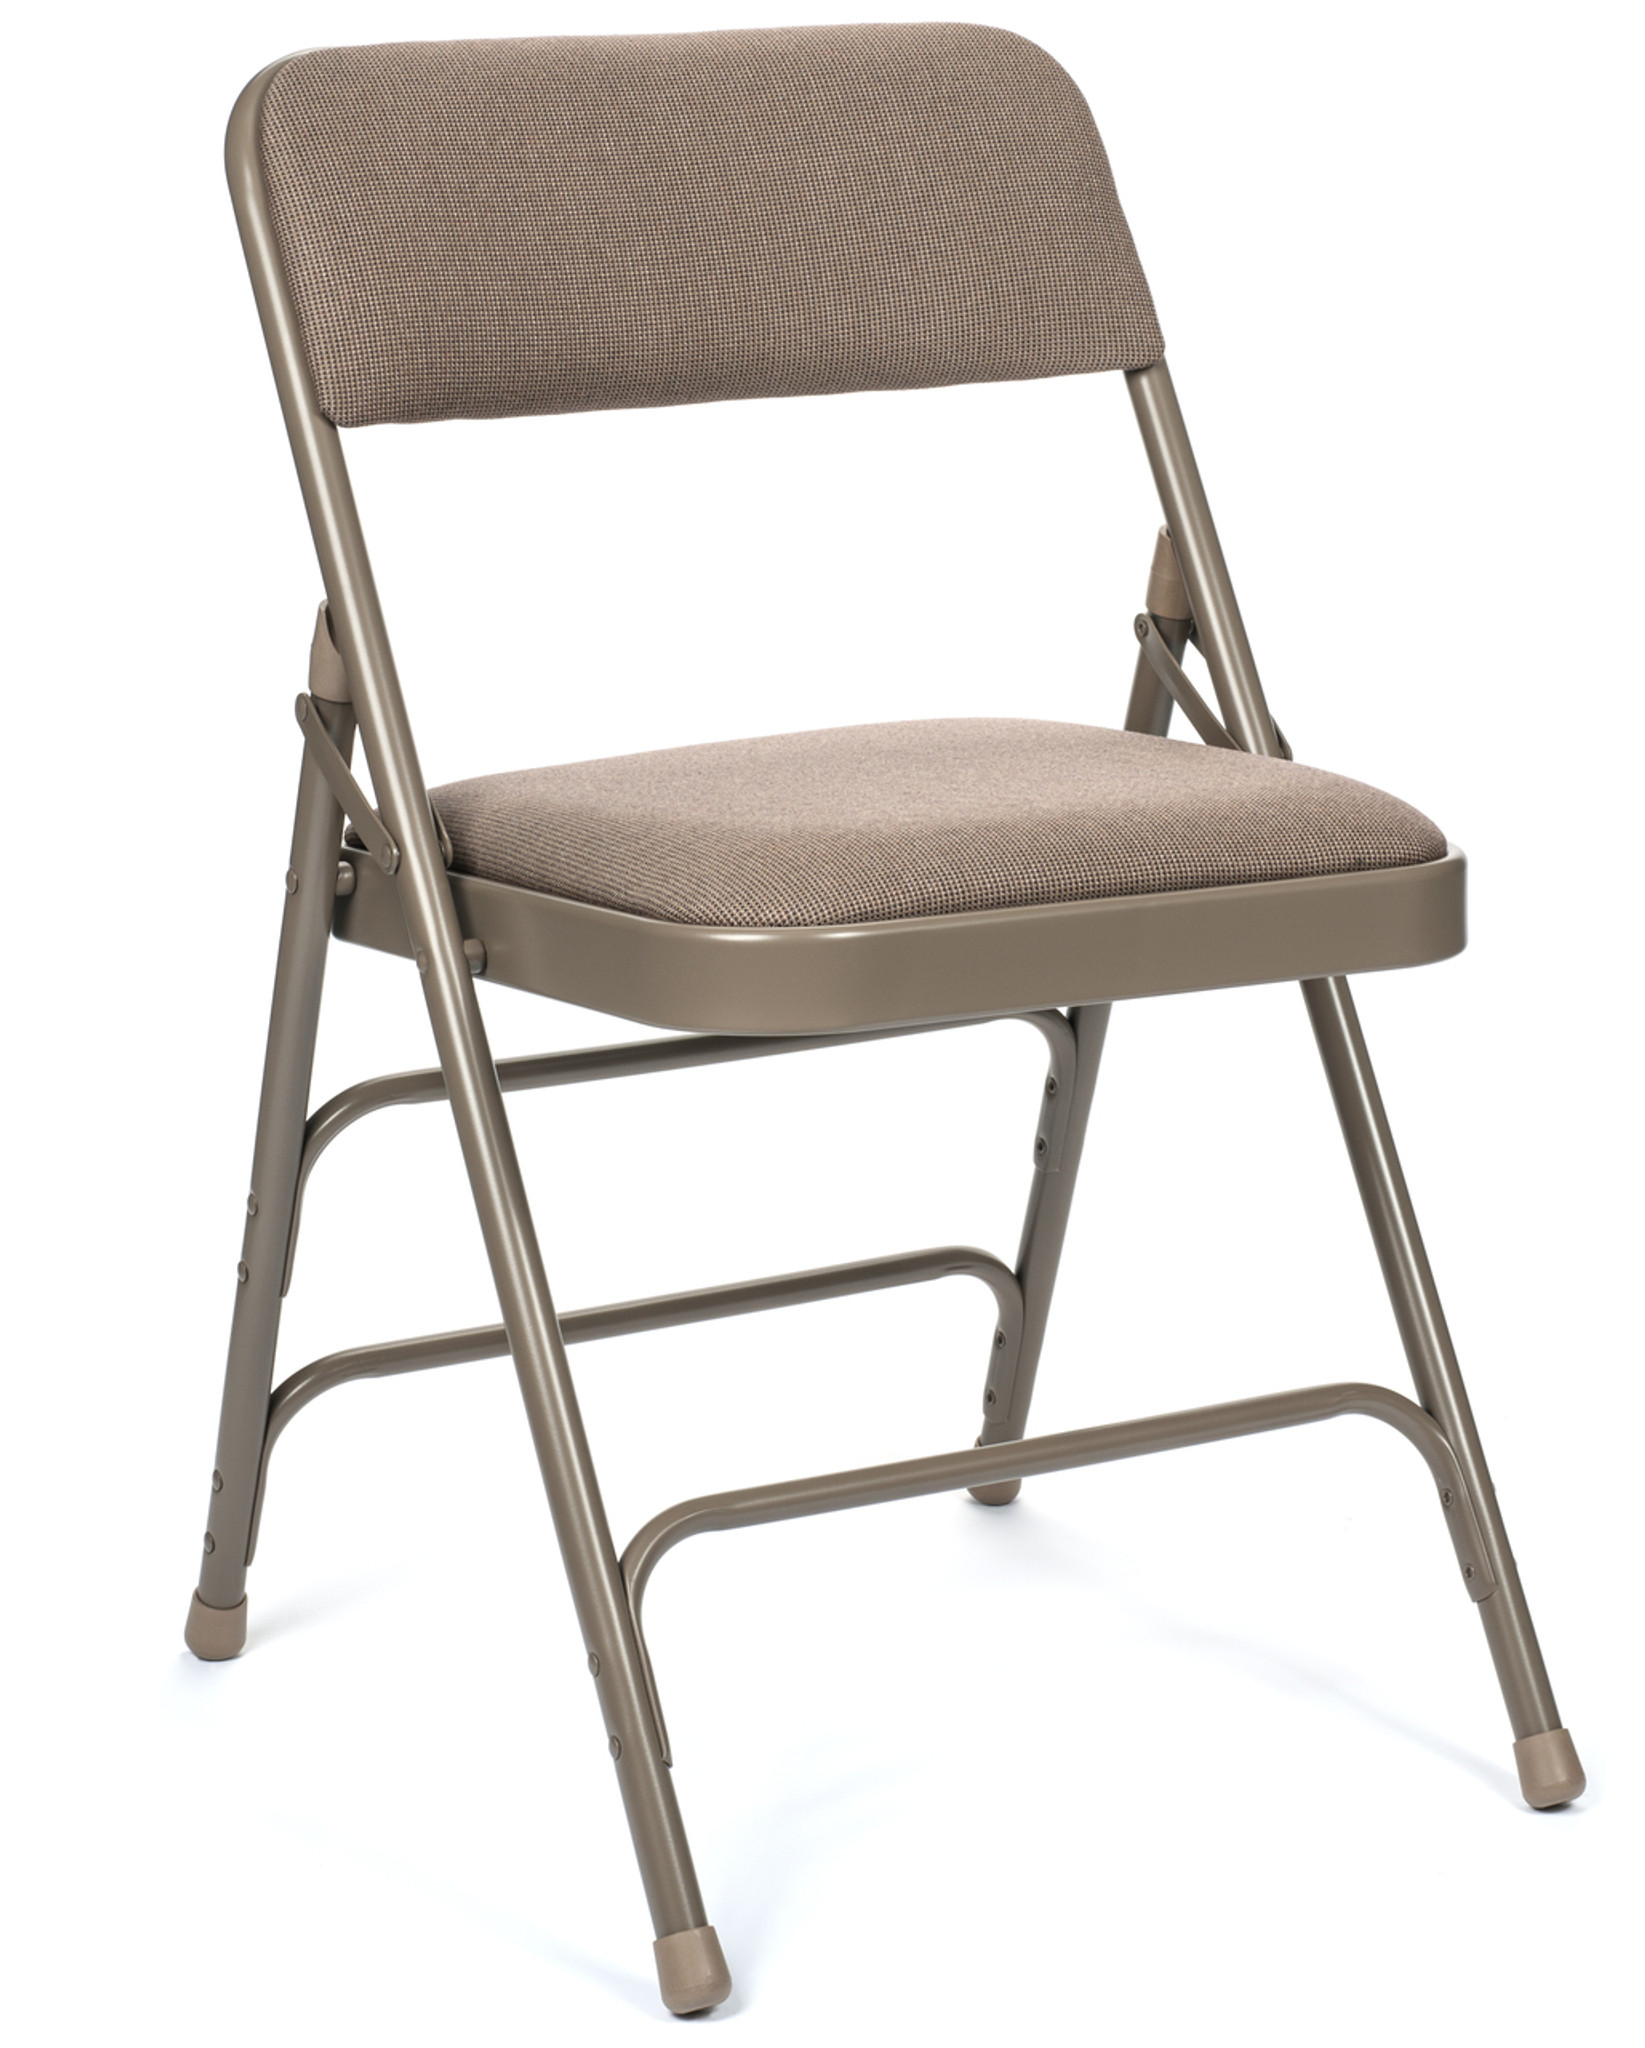 cloth padded folding chairs toddler ikea 5pc xl series card table and fabric chair